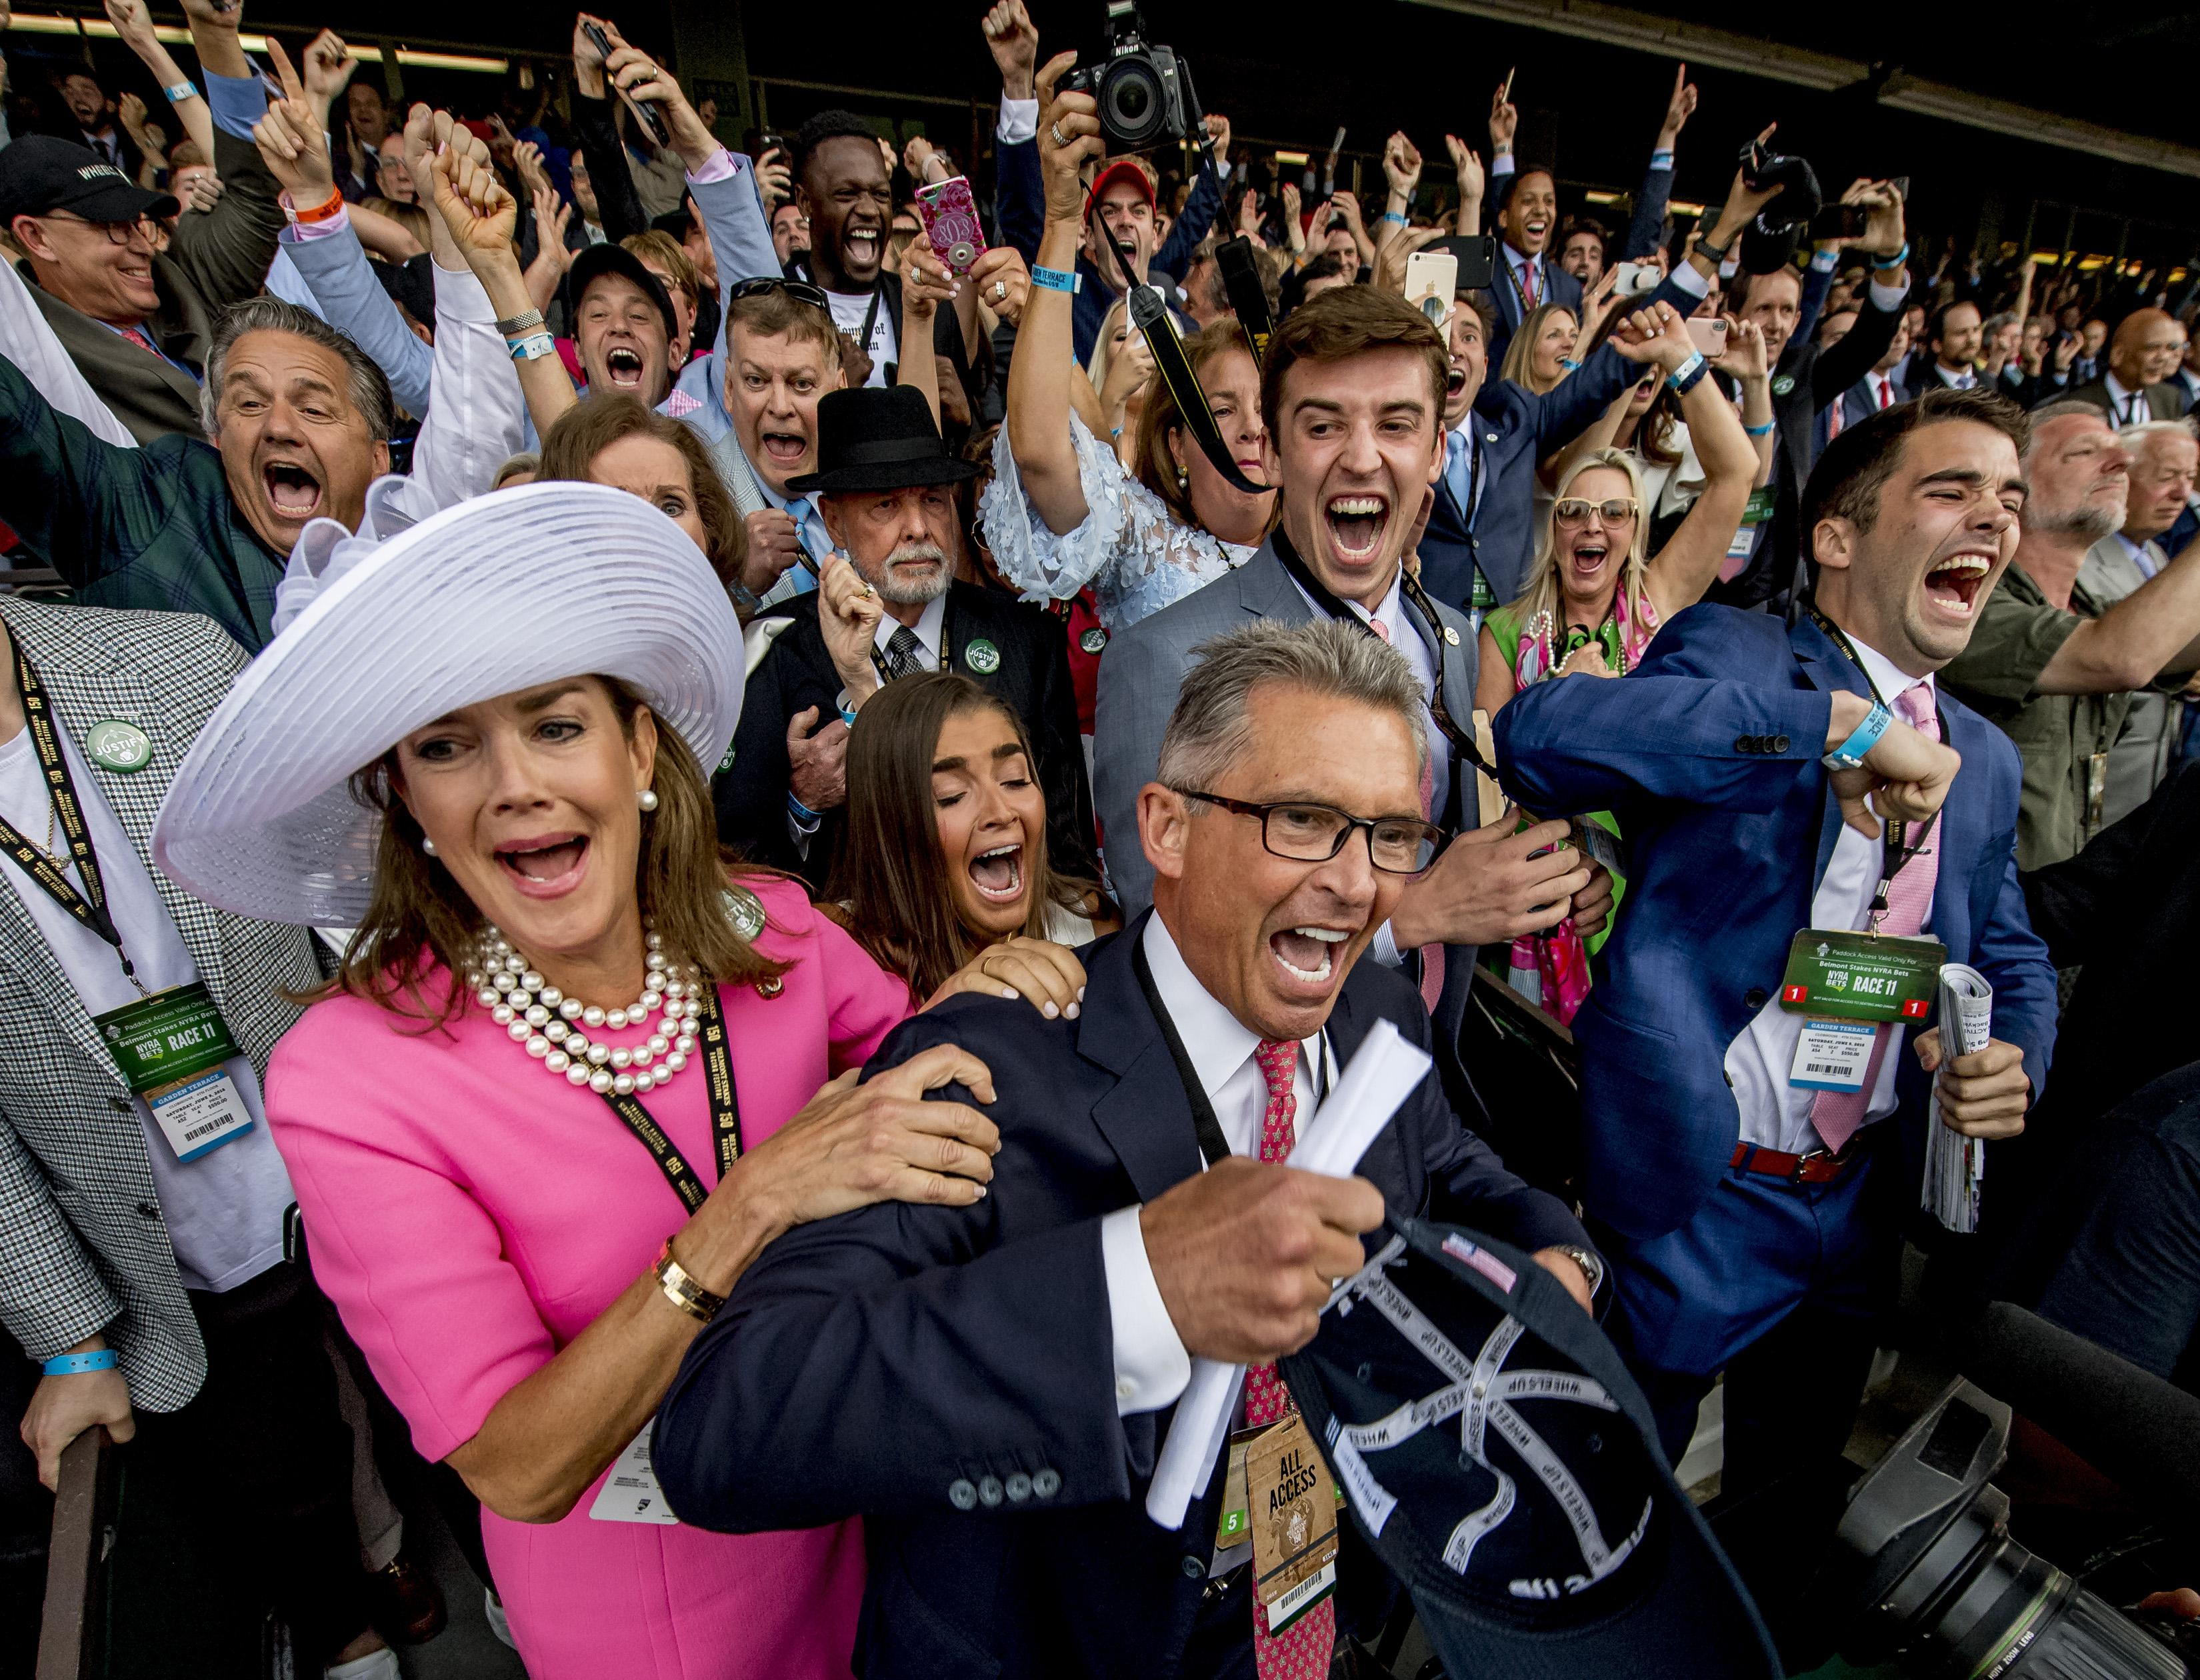 Kenny Troutt celebrates Justify's Belmont win with family and friends.